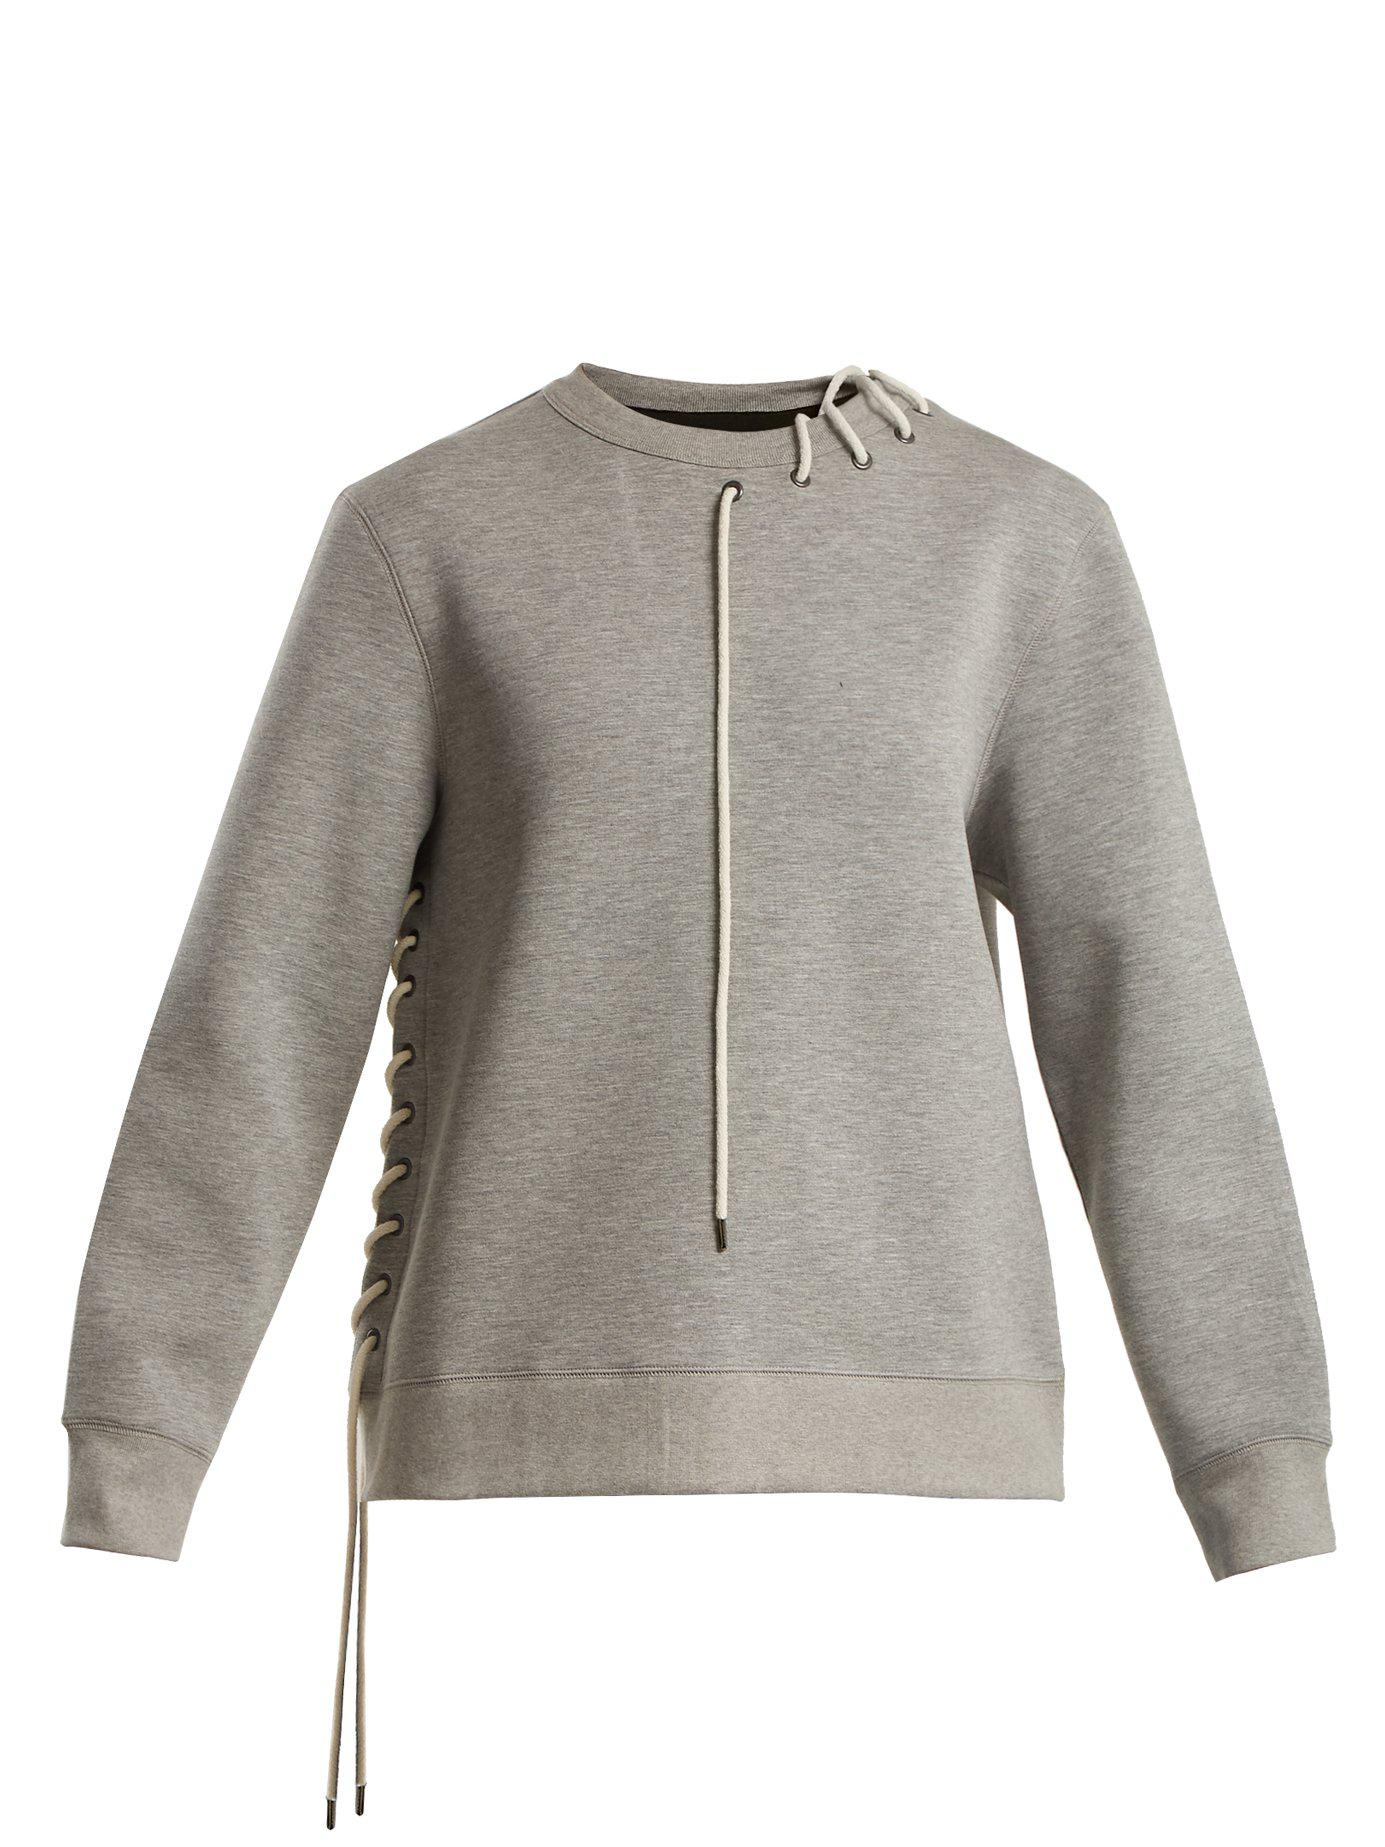 69f403affd ... Gray Crew Neck Lace Up Jersey Sweatshirt - Lyst. View fullscreen